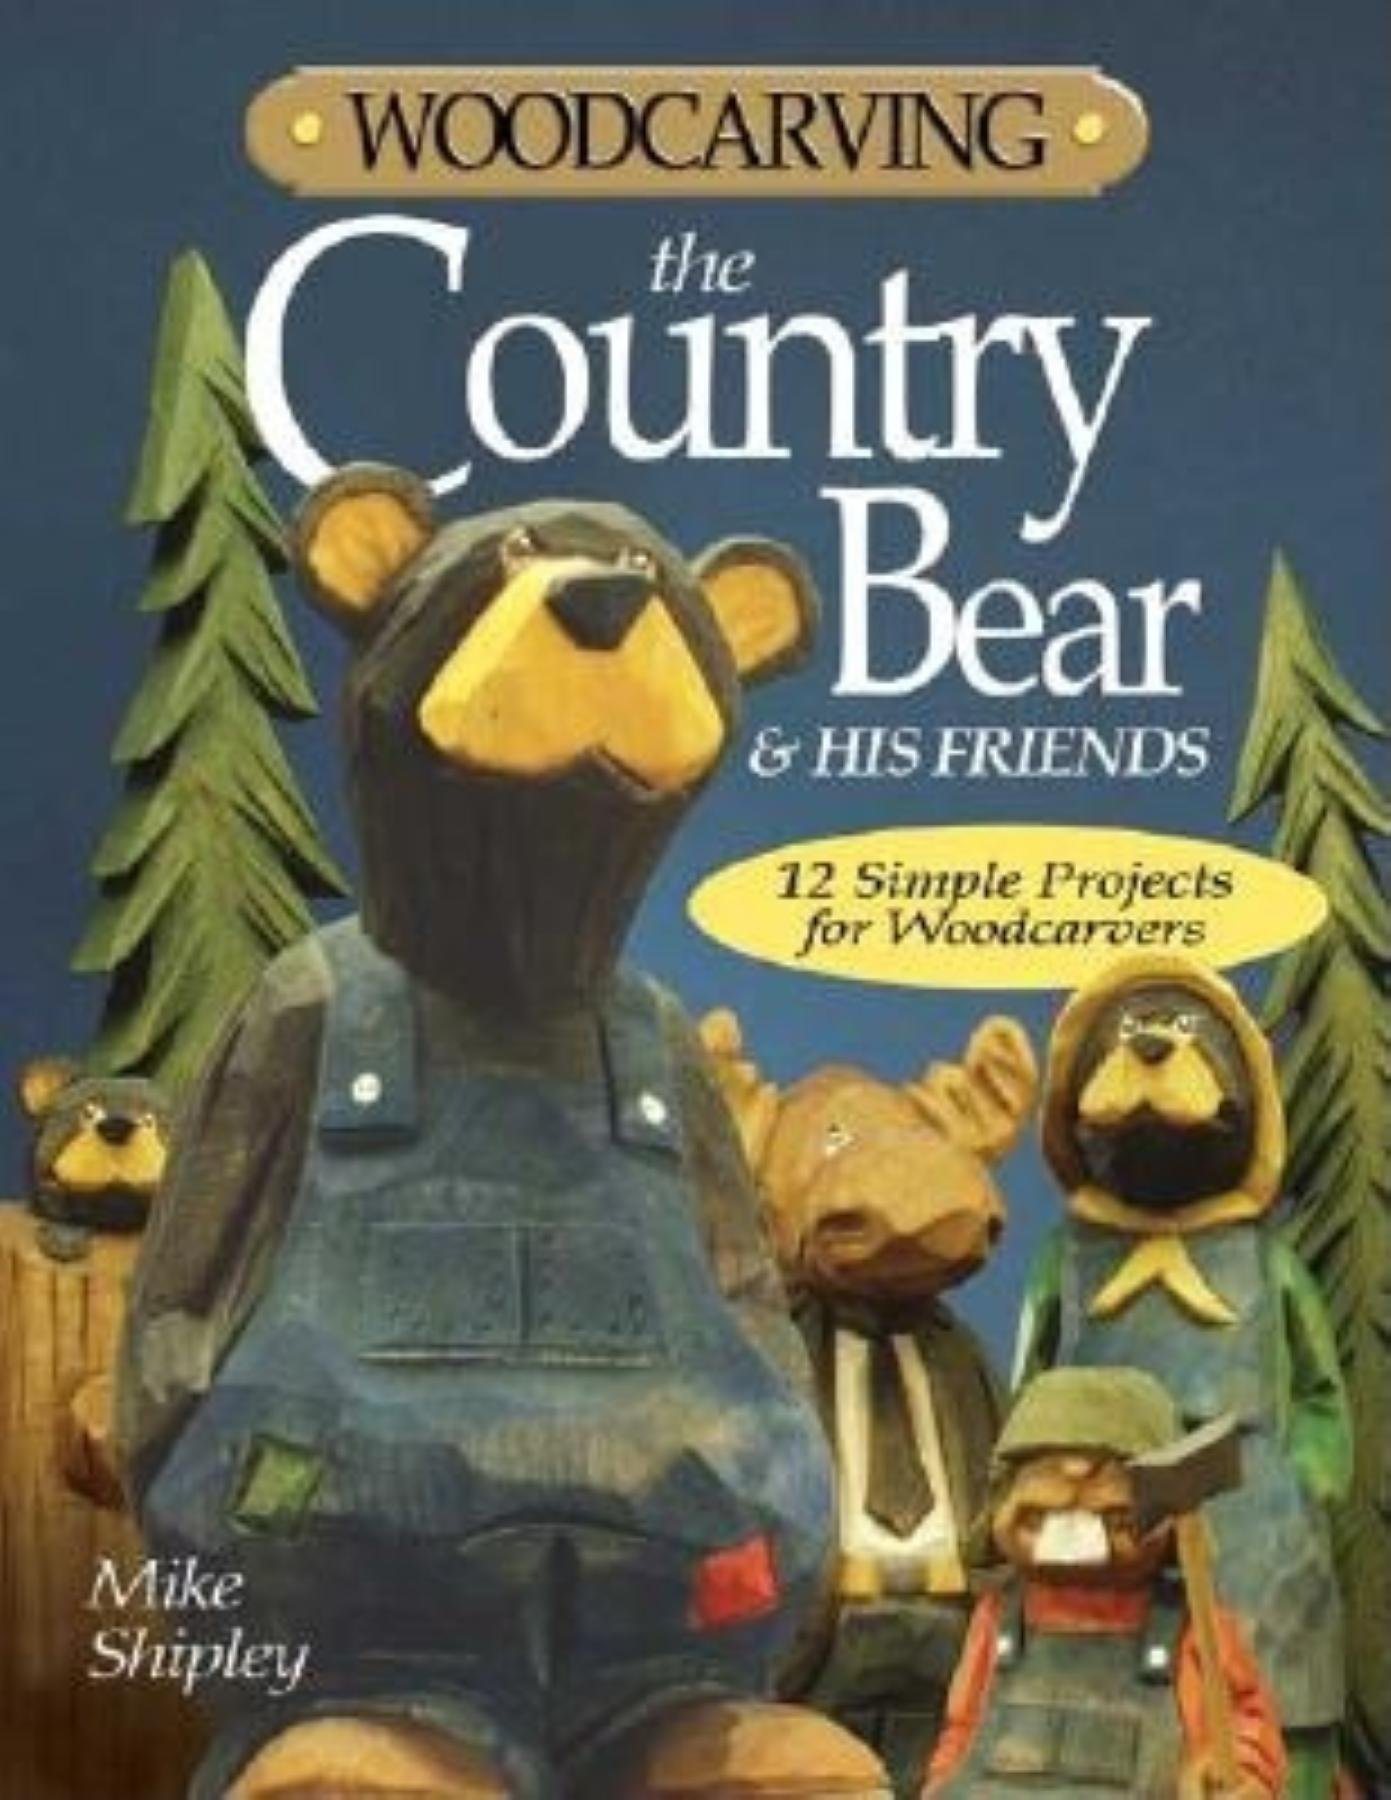 Woodcarving the Country Bear & His Friends: 12 Simple Projects for Woodcarvers